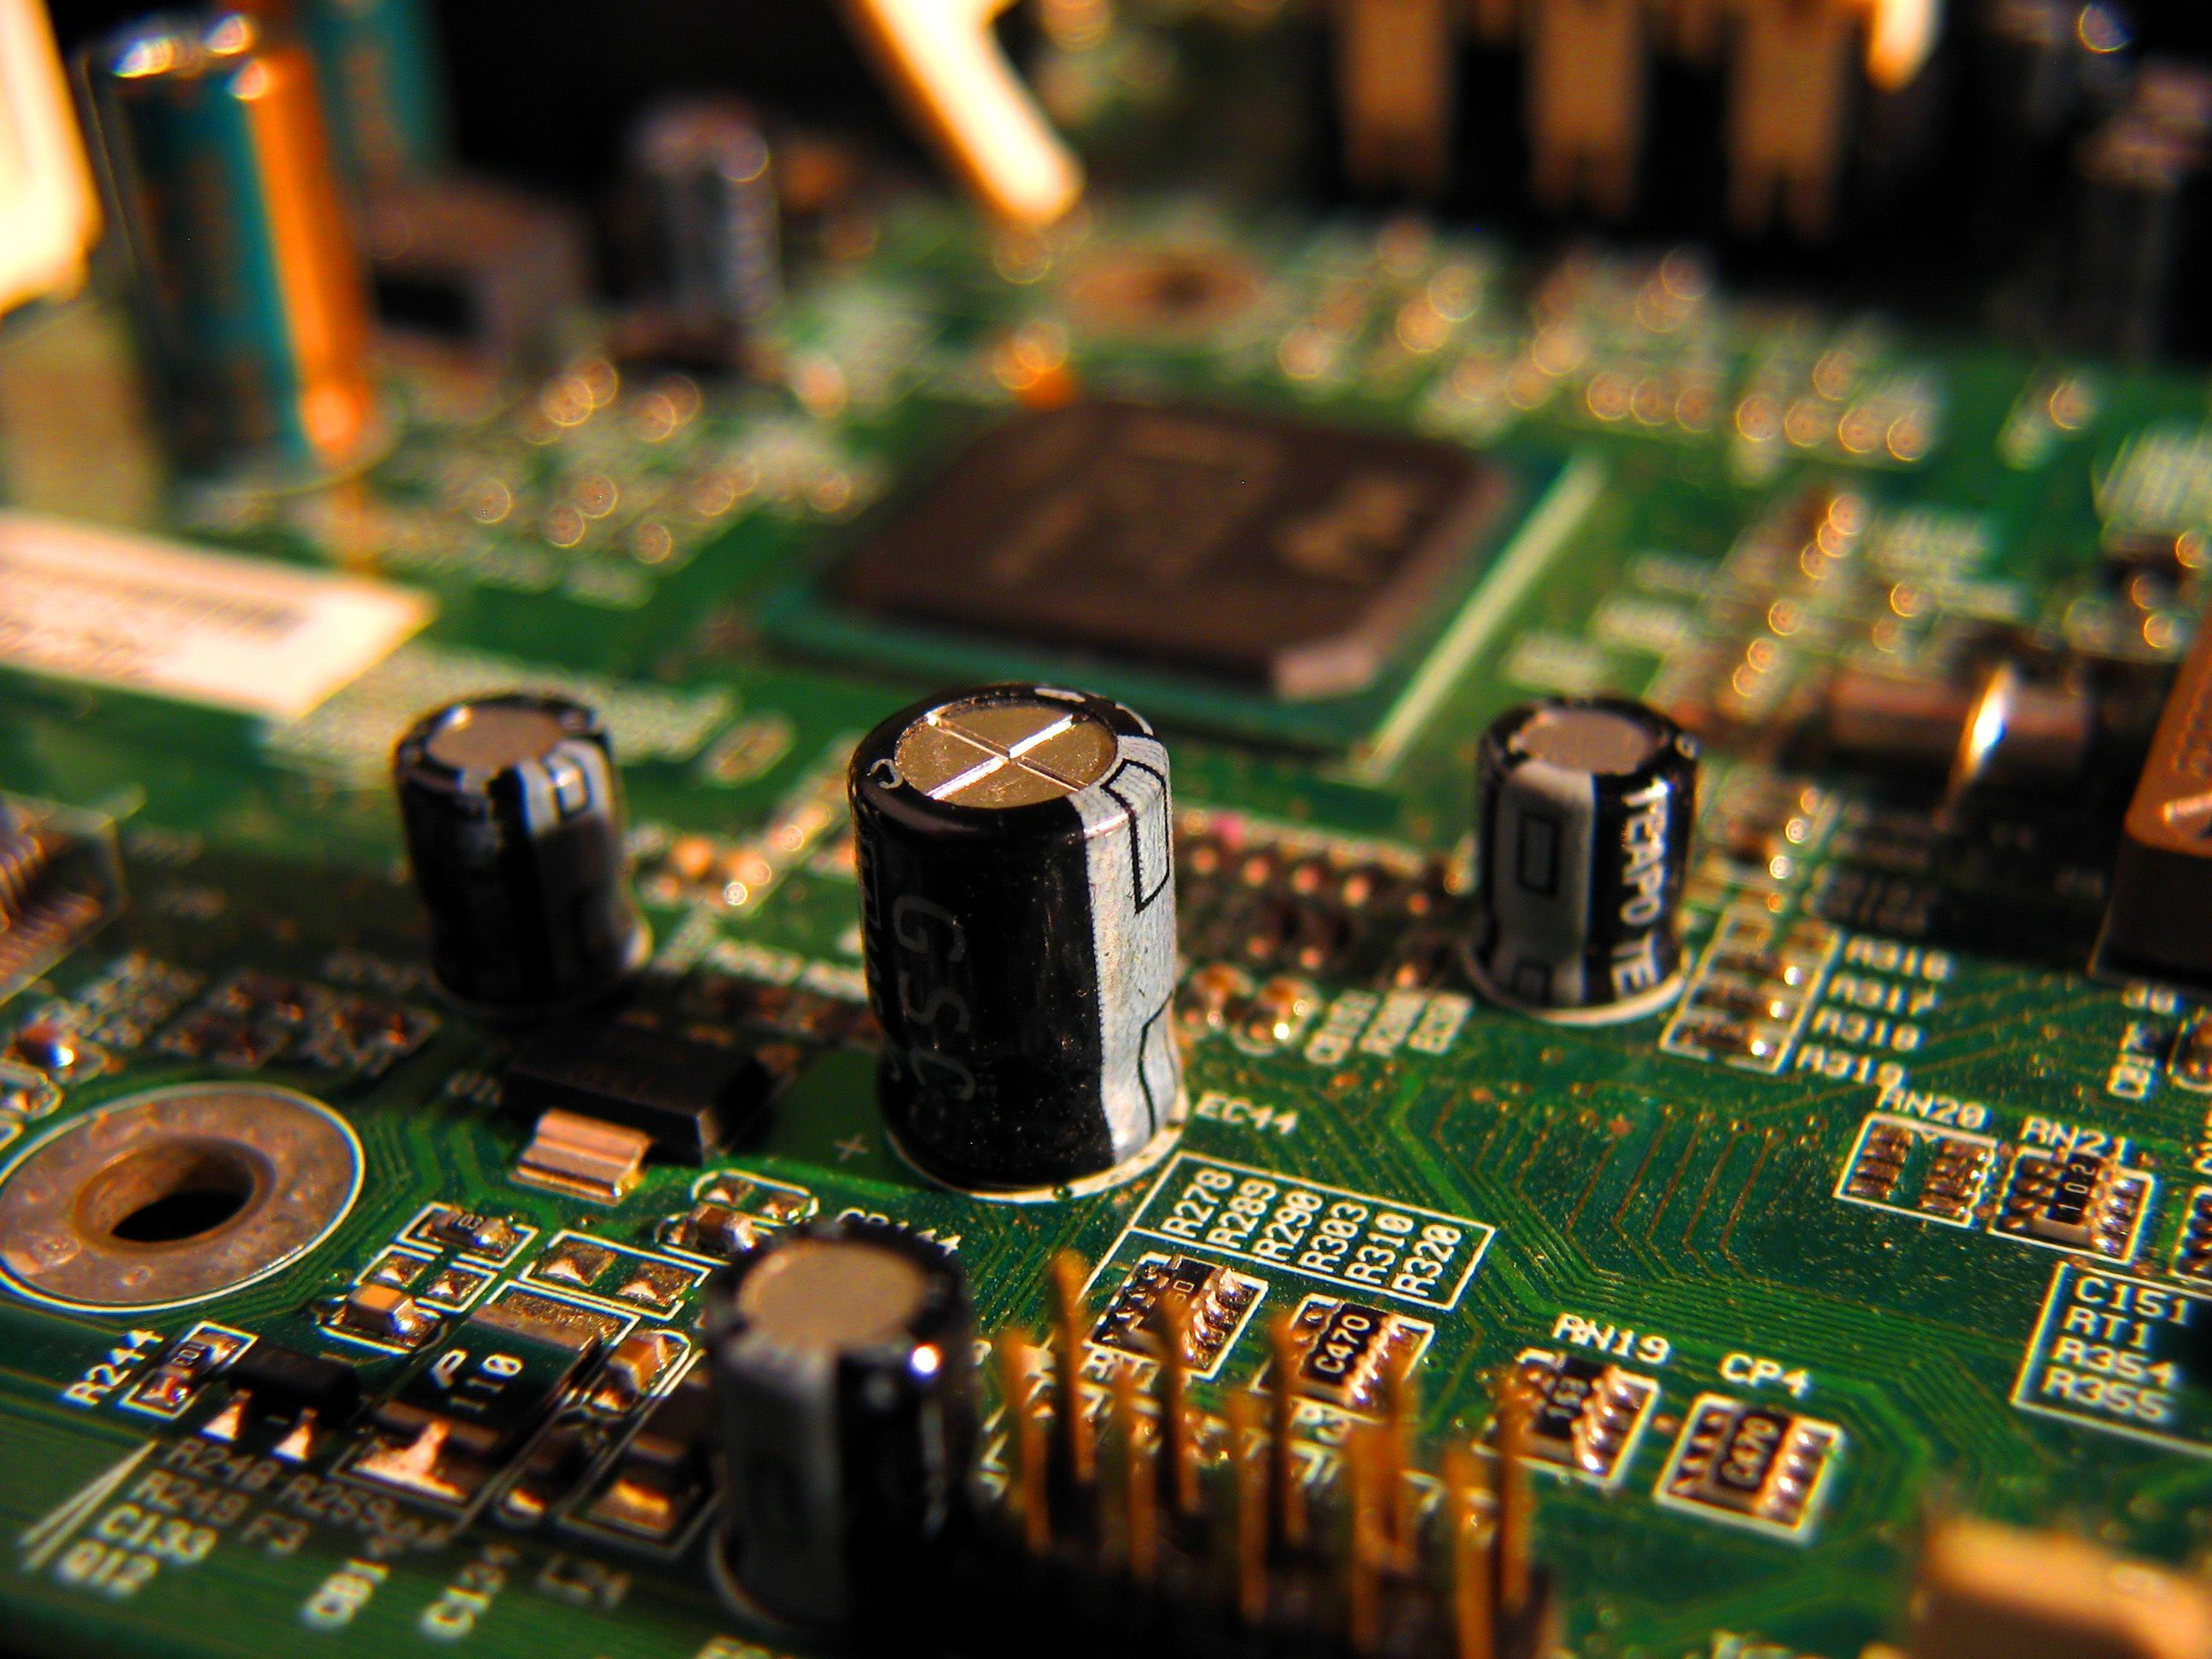 60 Best Free Electronic Circuit Wallpapers Wallpaperaccess Capacitor Diagram Images Pictures Becuo 1920x1080 Backgrounds Ivedipreceptivco